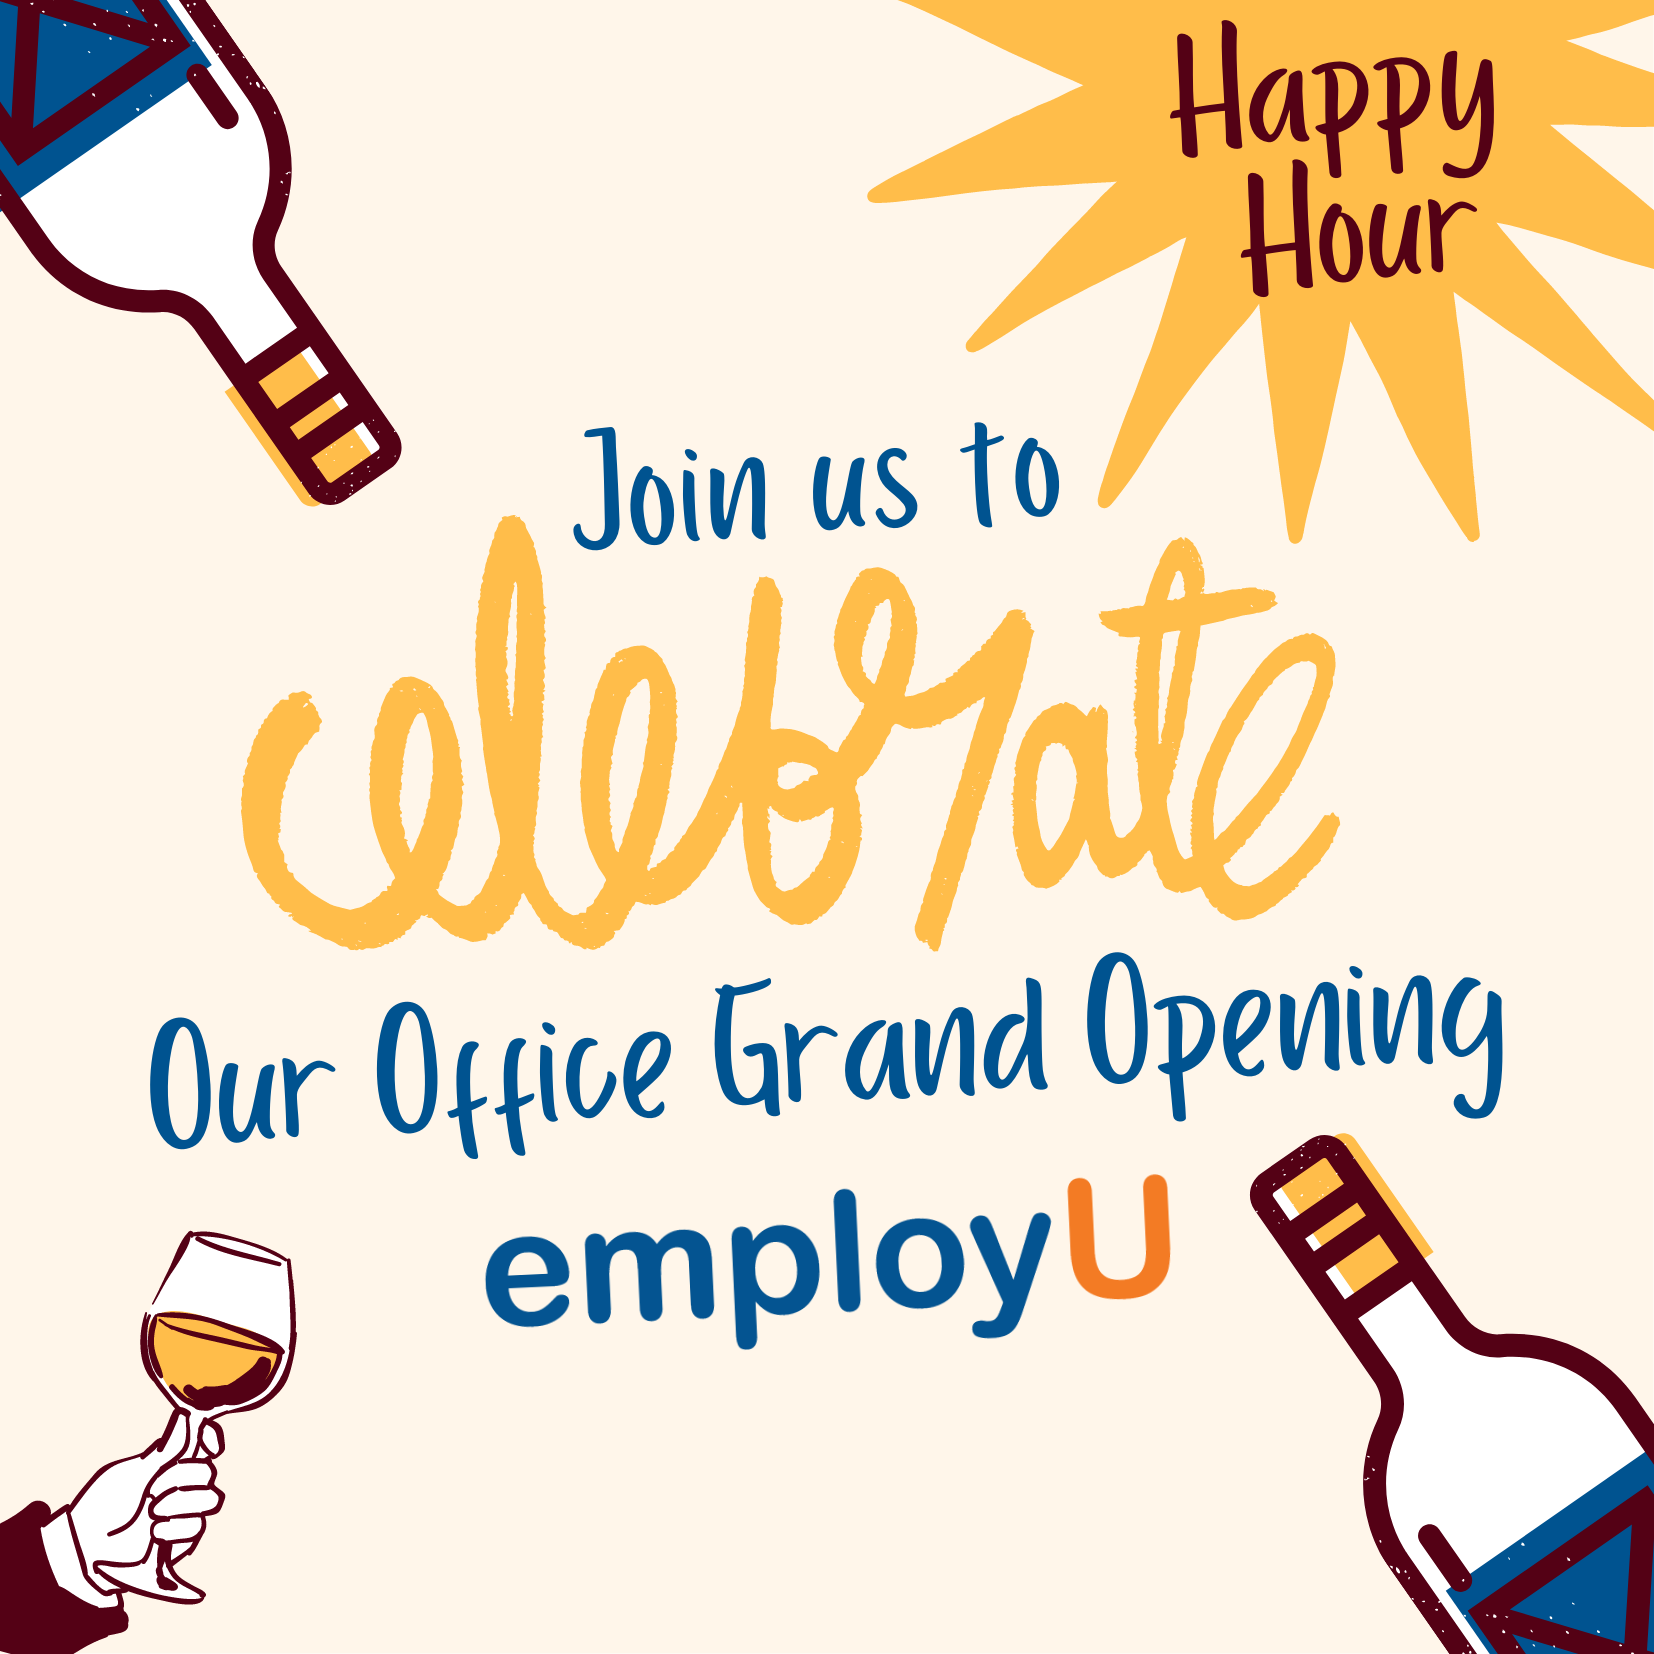 employU tallahassee grand opening happy hour event